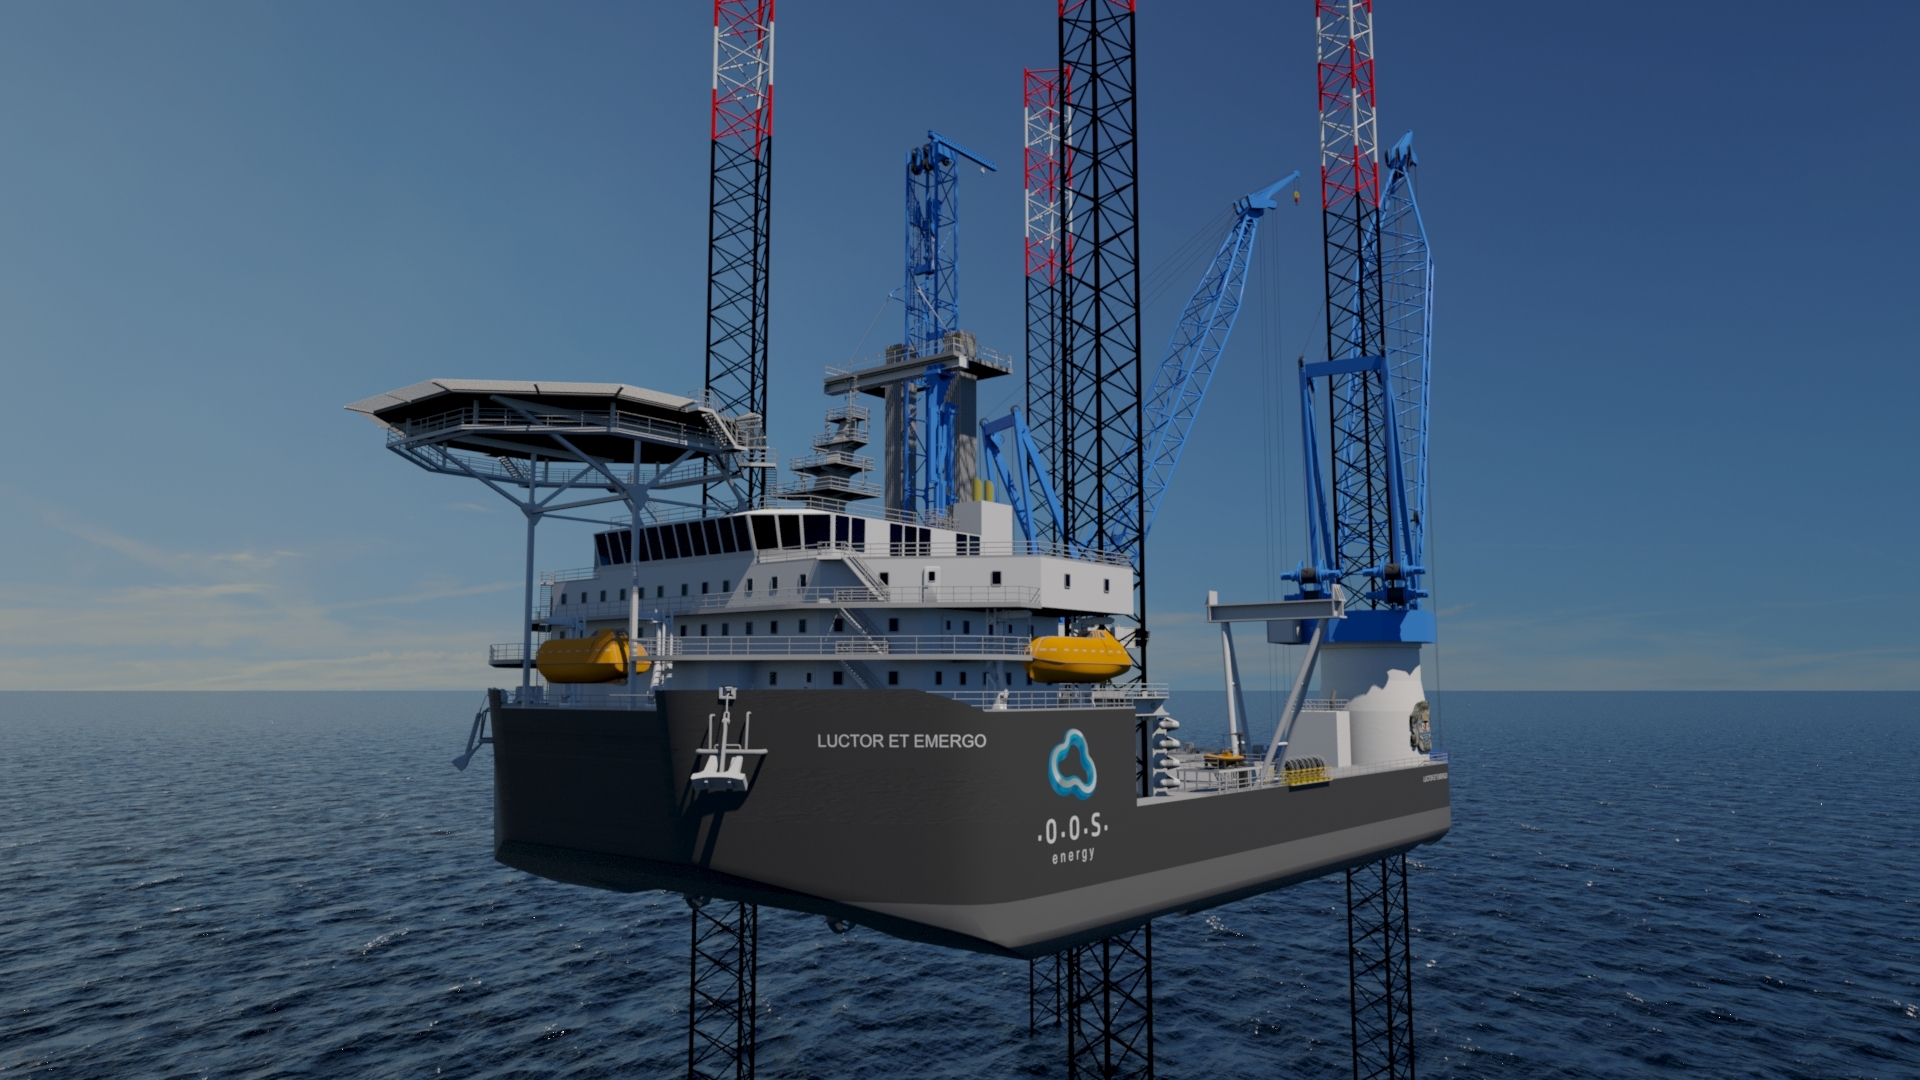 The Chameleon unit is operational for offshore oil and gas, renewables and decom. Credit: CDC Scotland.